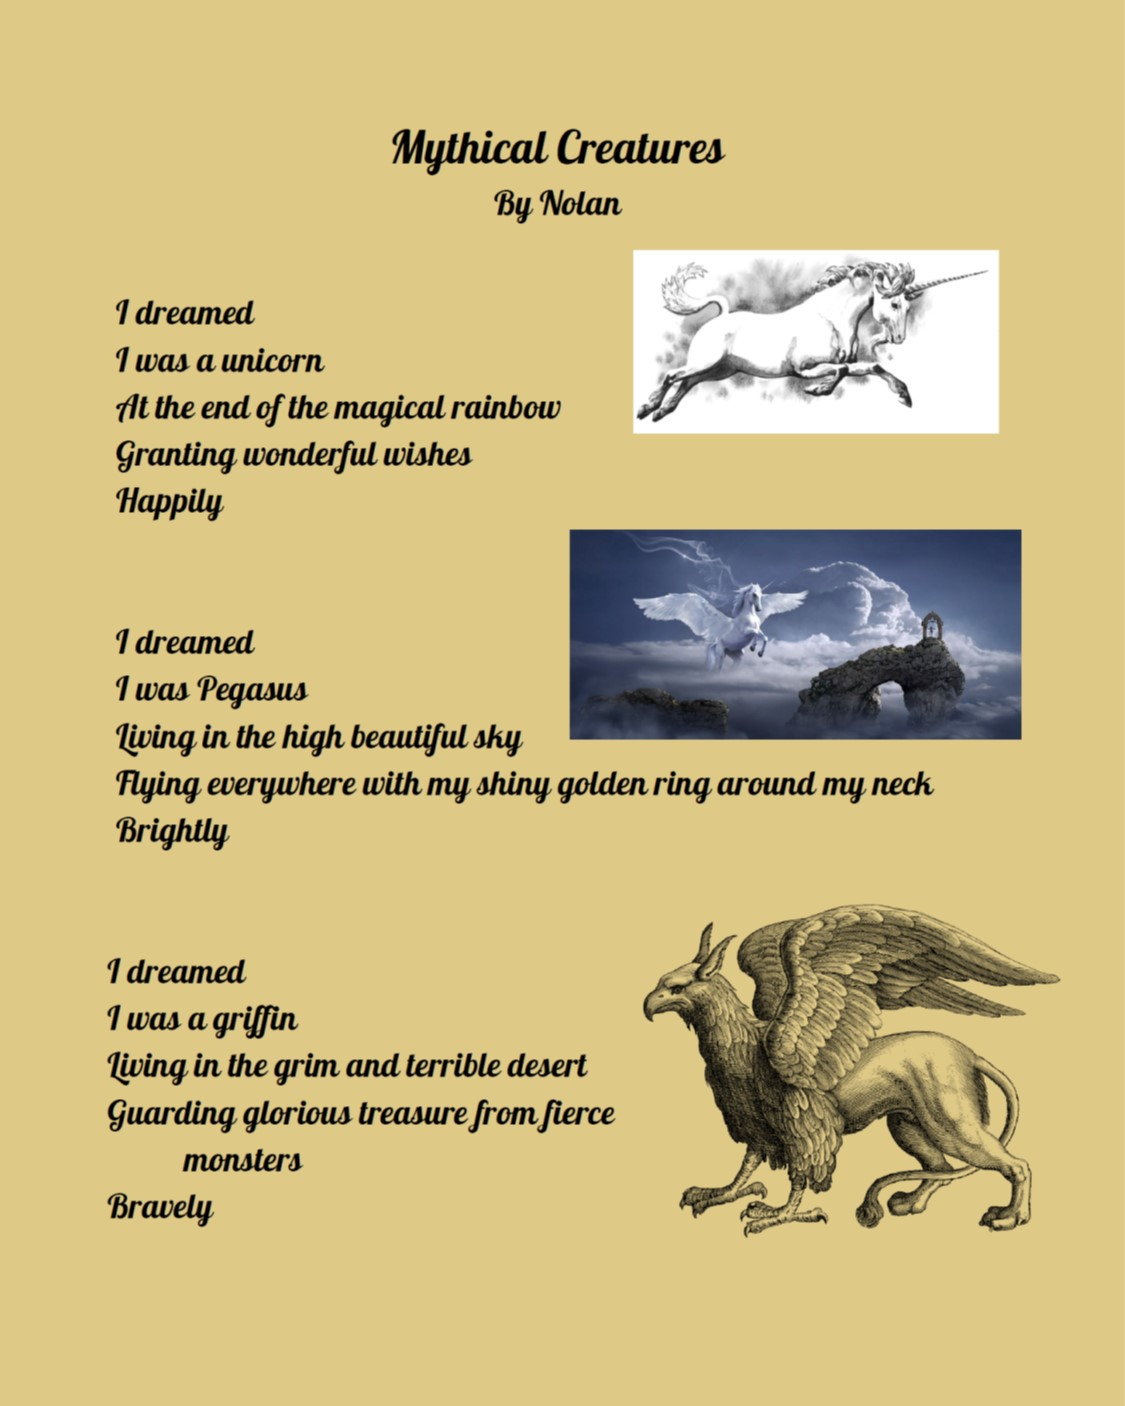 Mythical Creatures by Nolan